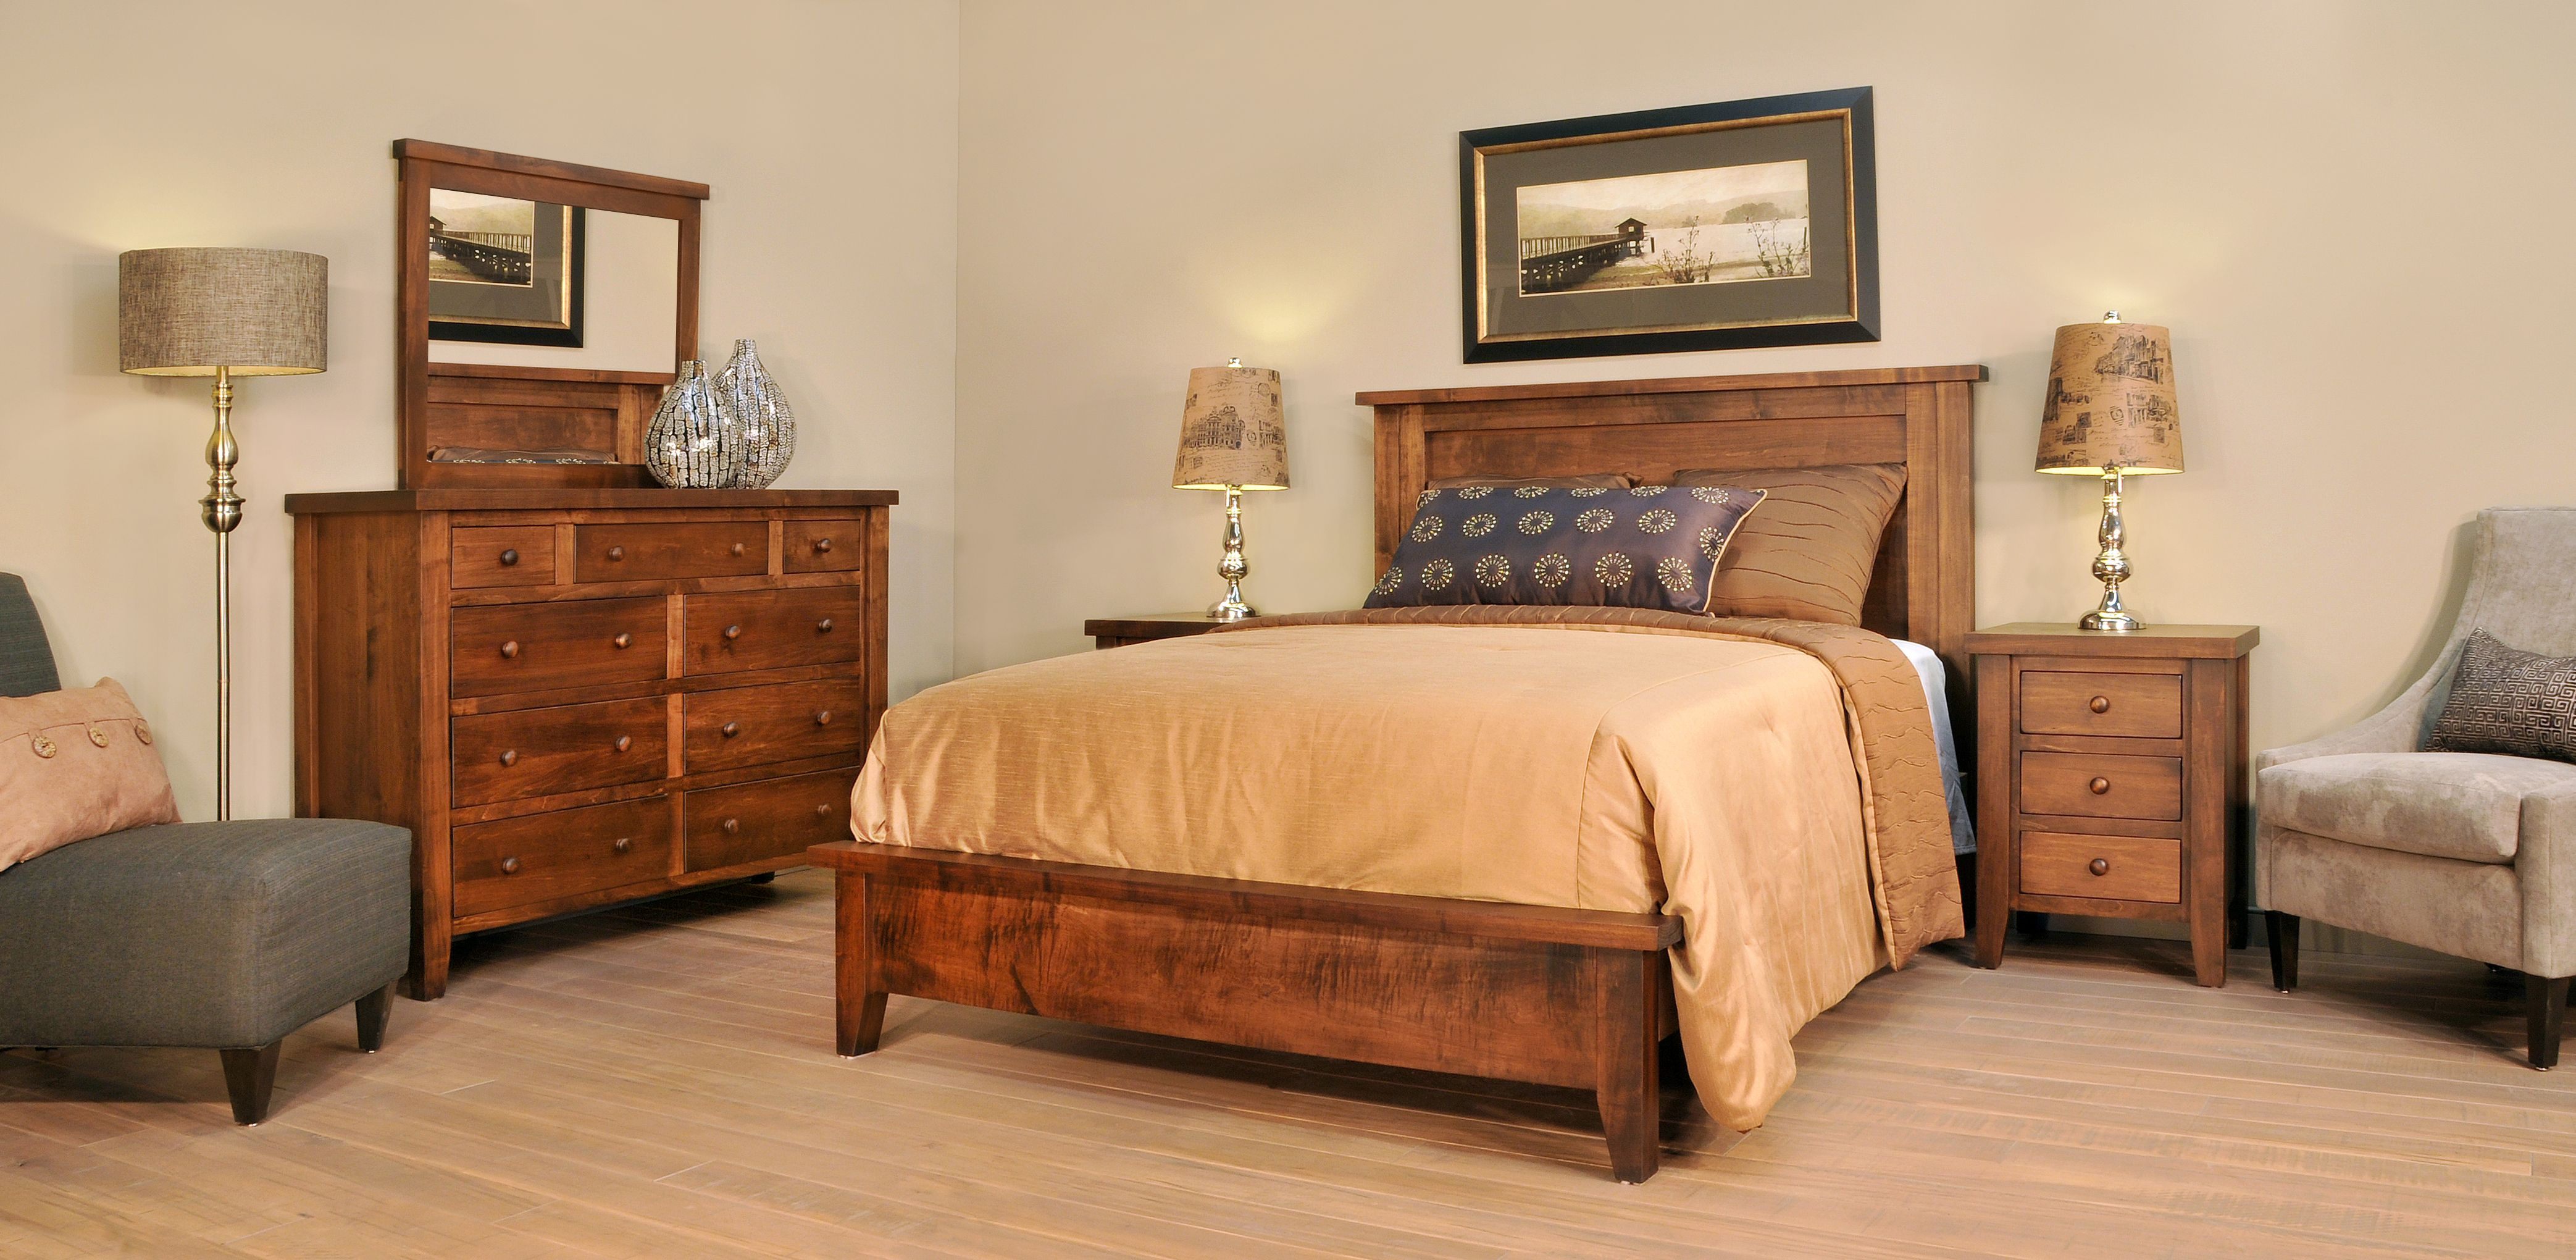 Amish Farmhouse Oak Jenison Can They Do It In White